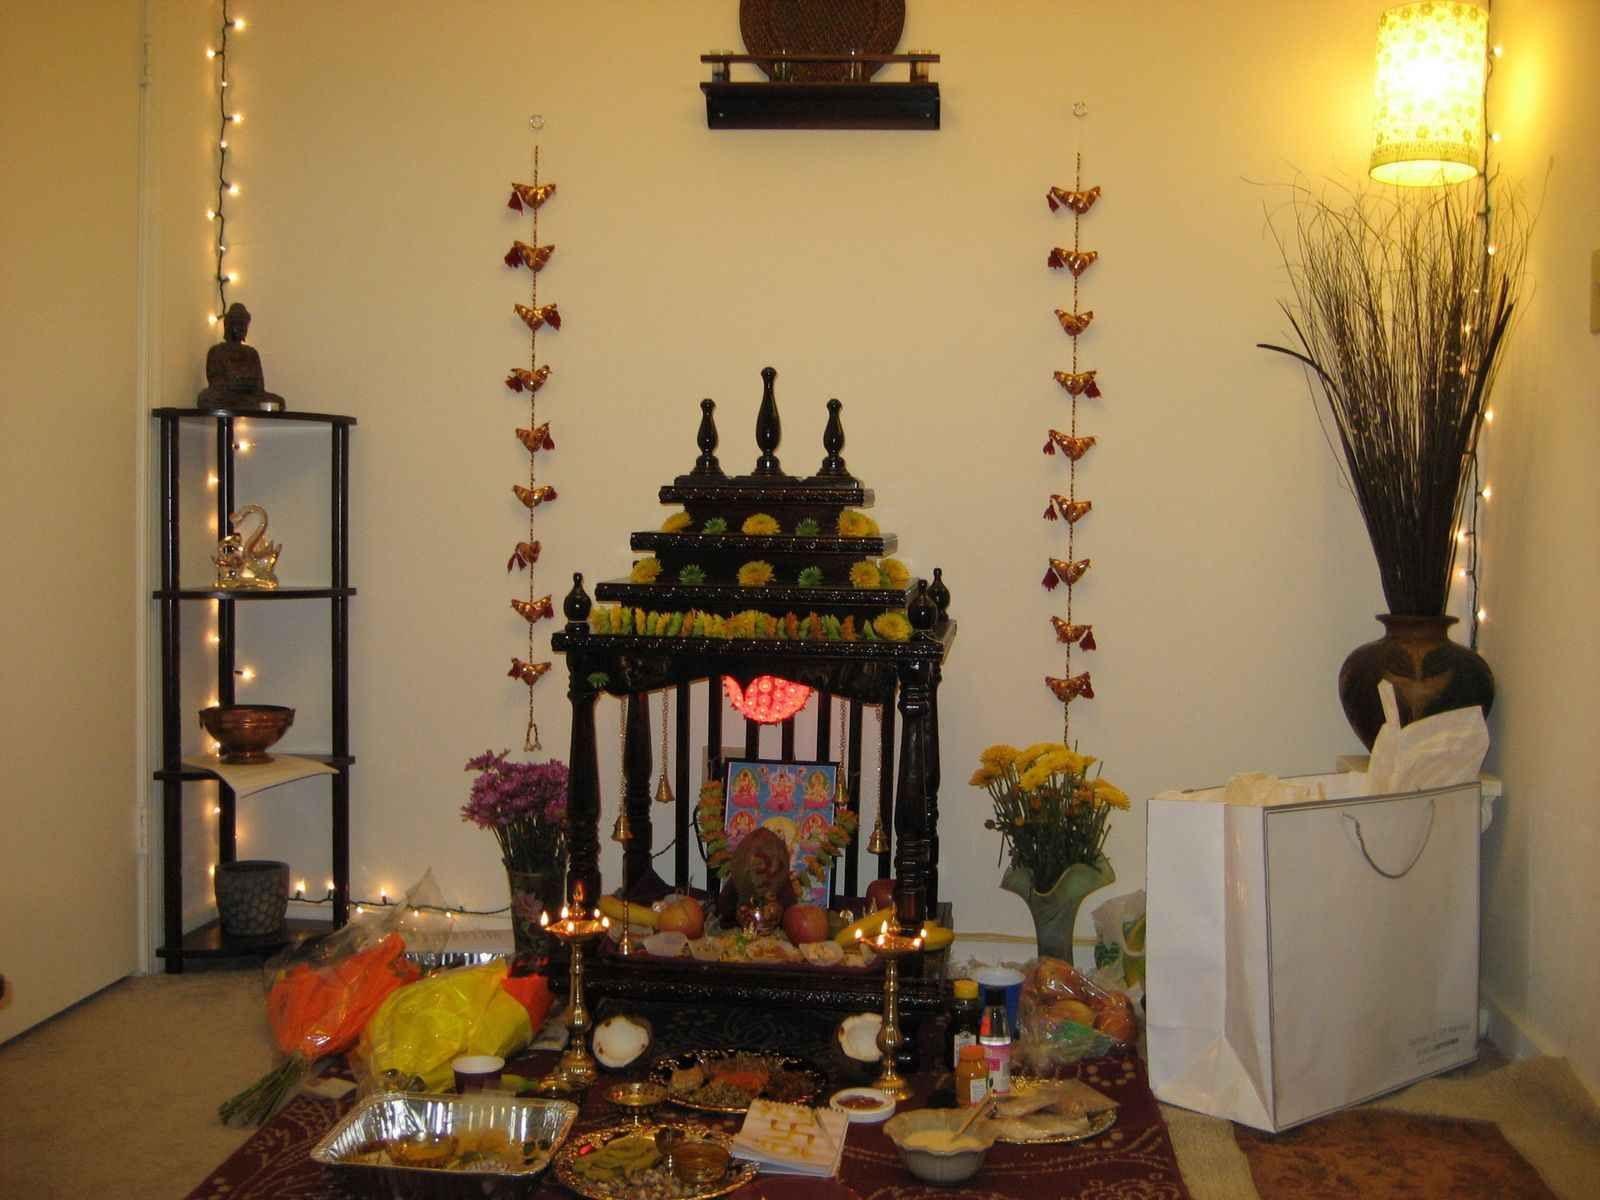 Puja room design home mandir lamps doors vastu idols placement pooja room ideas pooja Home decorations for diwali